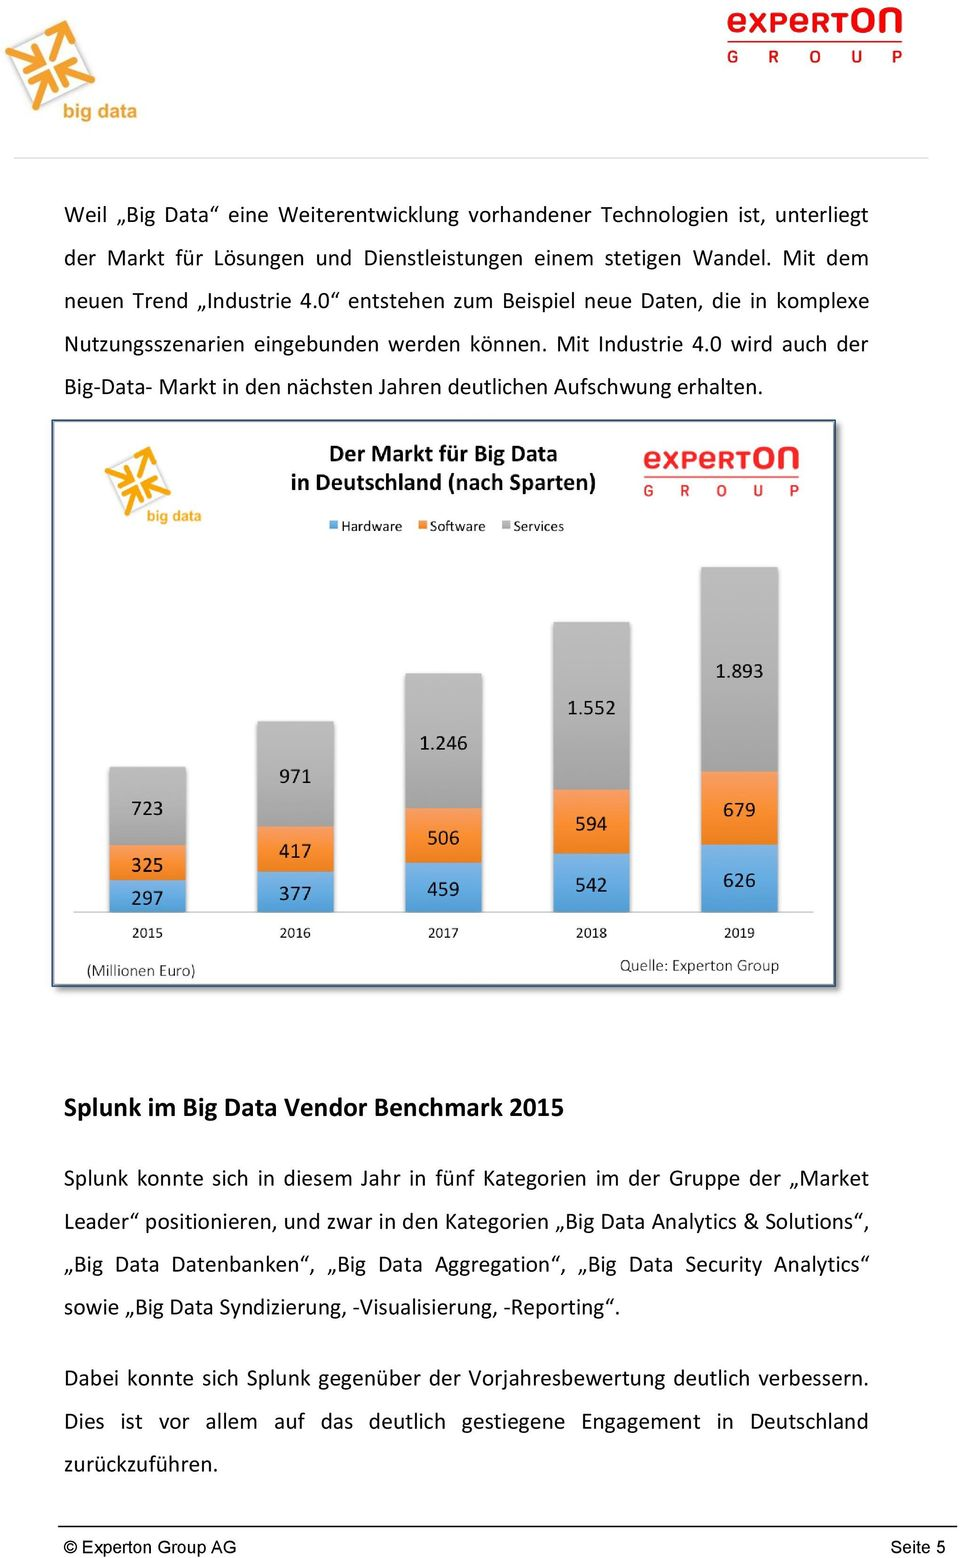 Splunk im Big Data Vendor Benchmark 2015 Splunk konnte sich in diesem Jahr in fünf Kategorien im der Gruppe der Market Leader positionieren, und zwar in den Kategorien Big Data Analytics & Solutions,